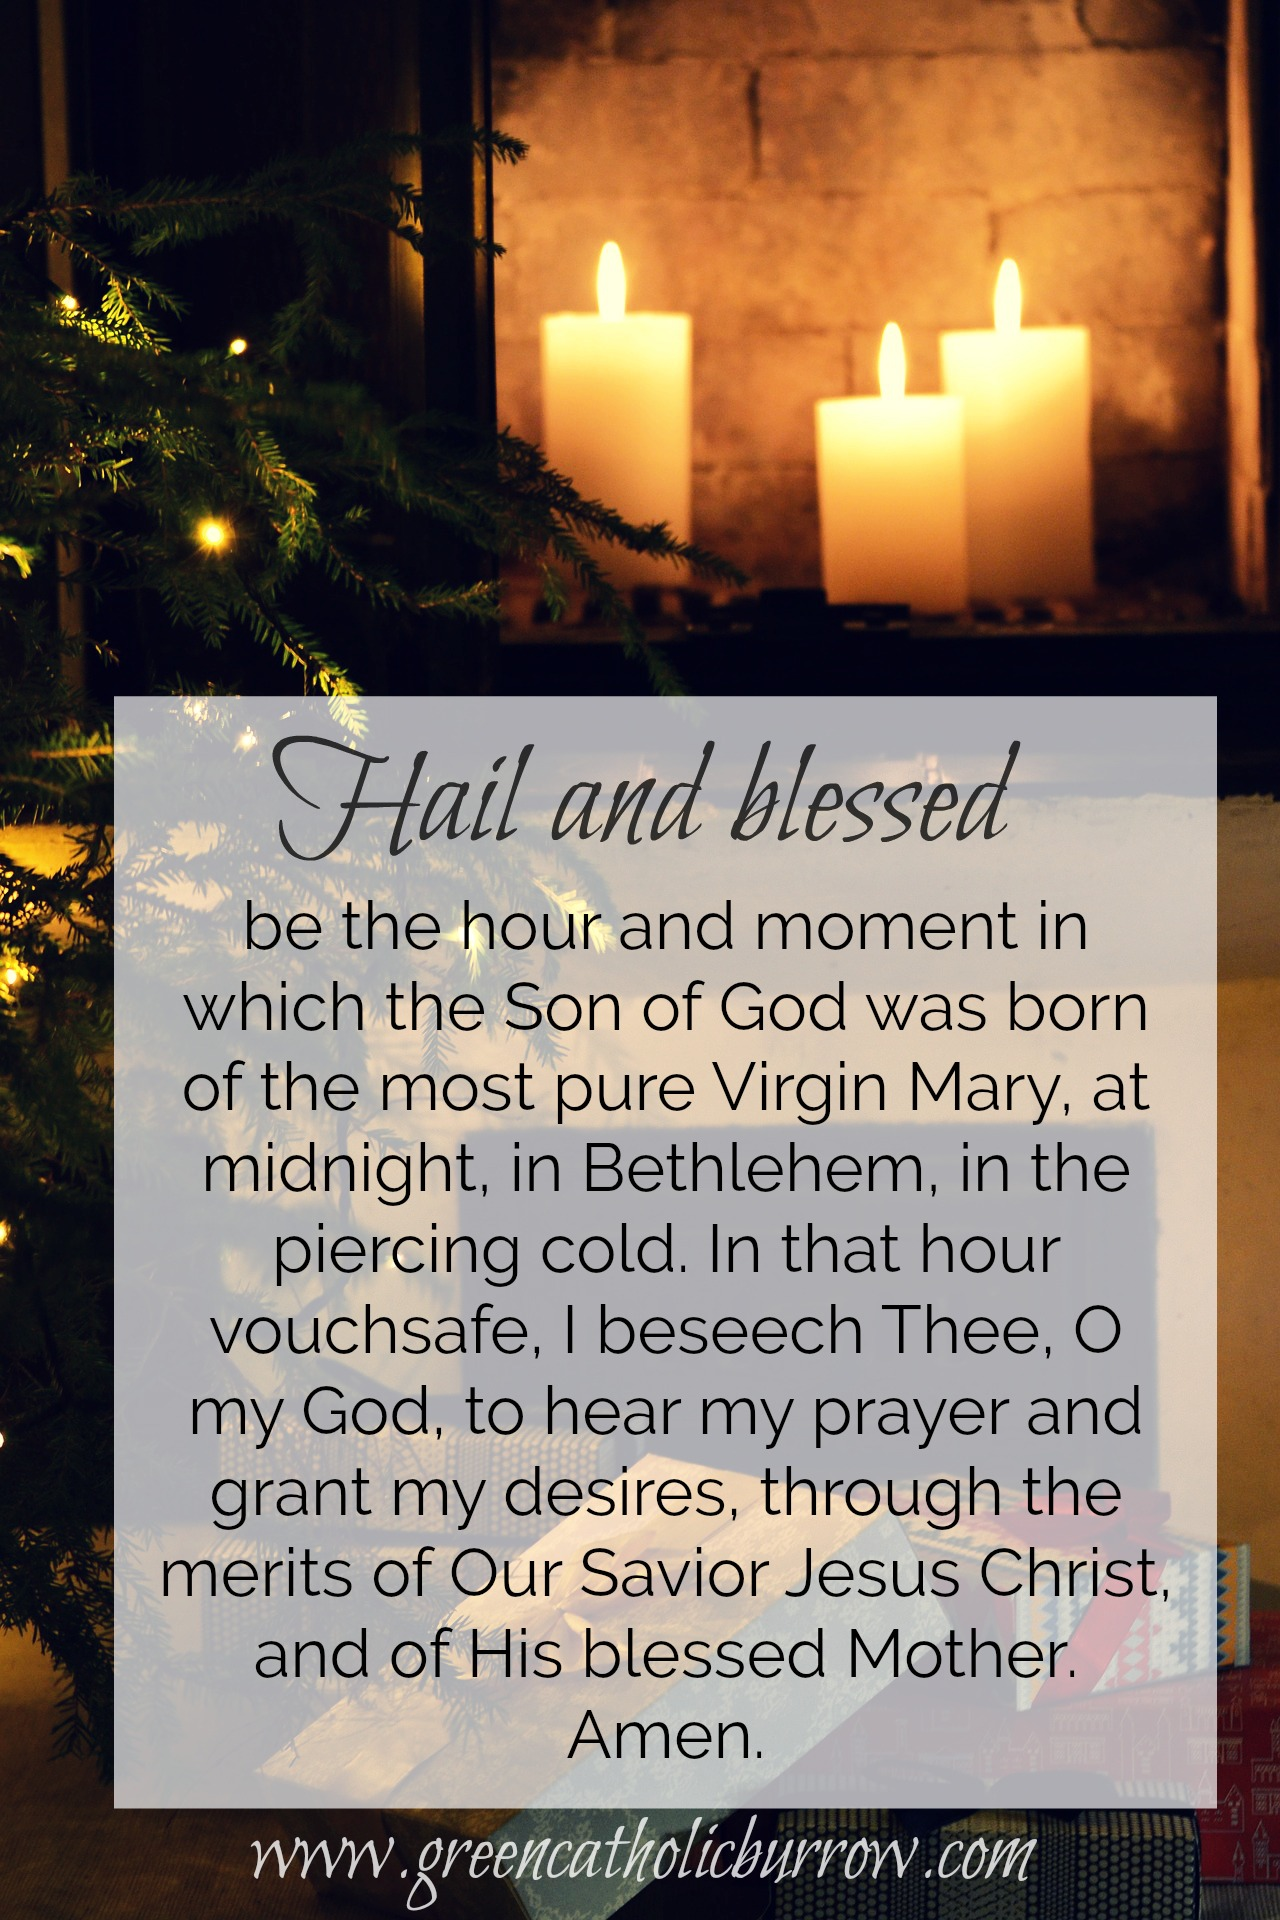 graphic about St Andrew Novena Printable called St. Andrew Xmas Novena Inexperienced Catholic Burrow